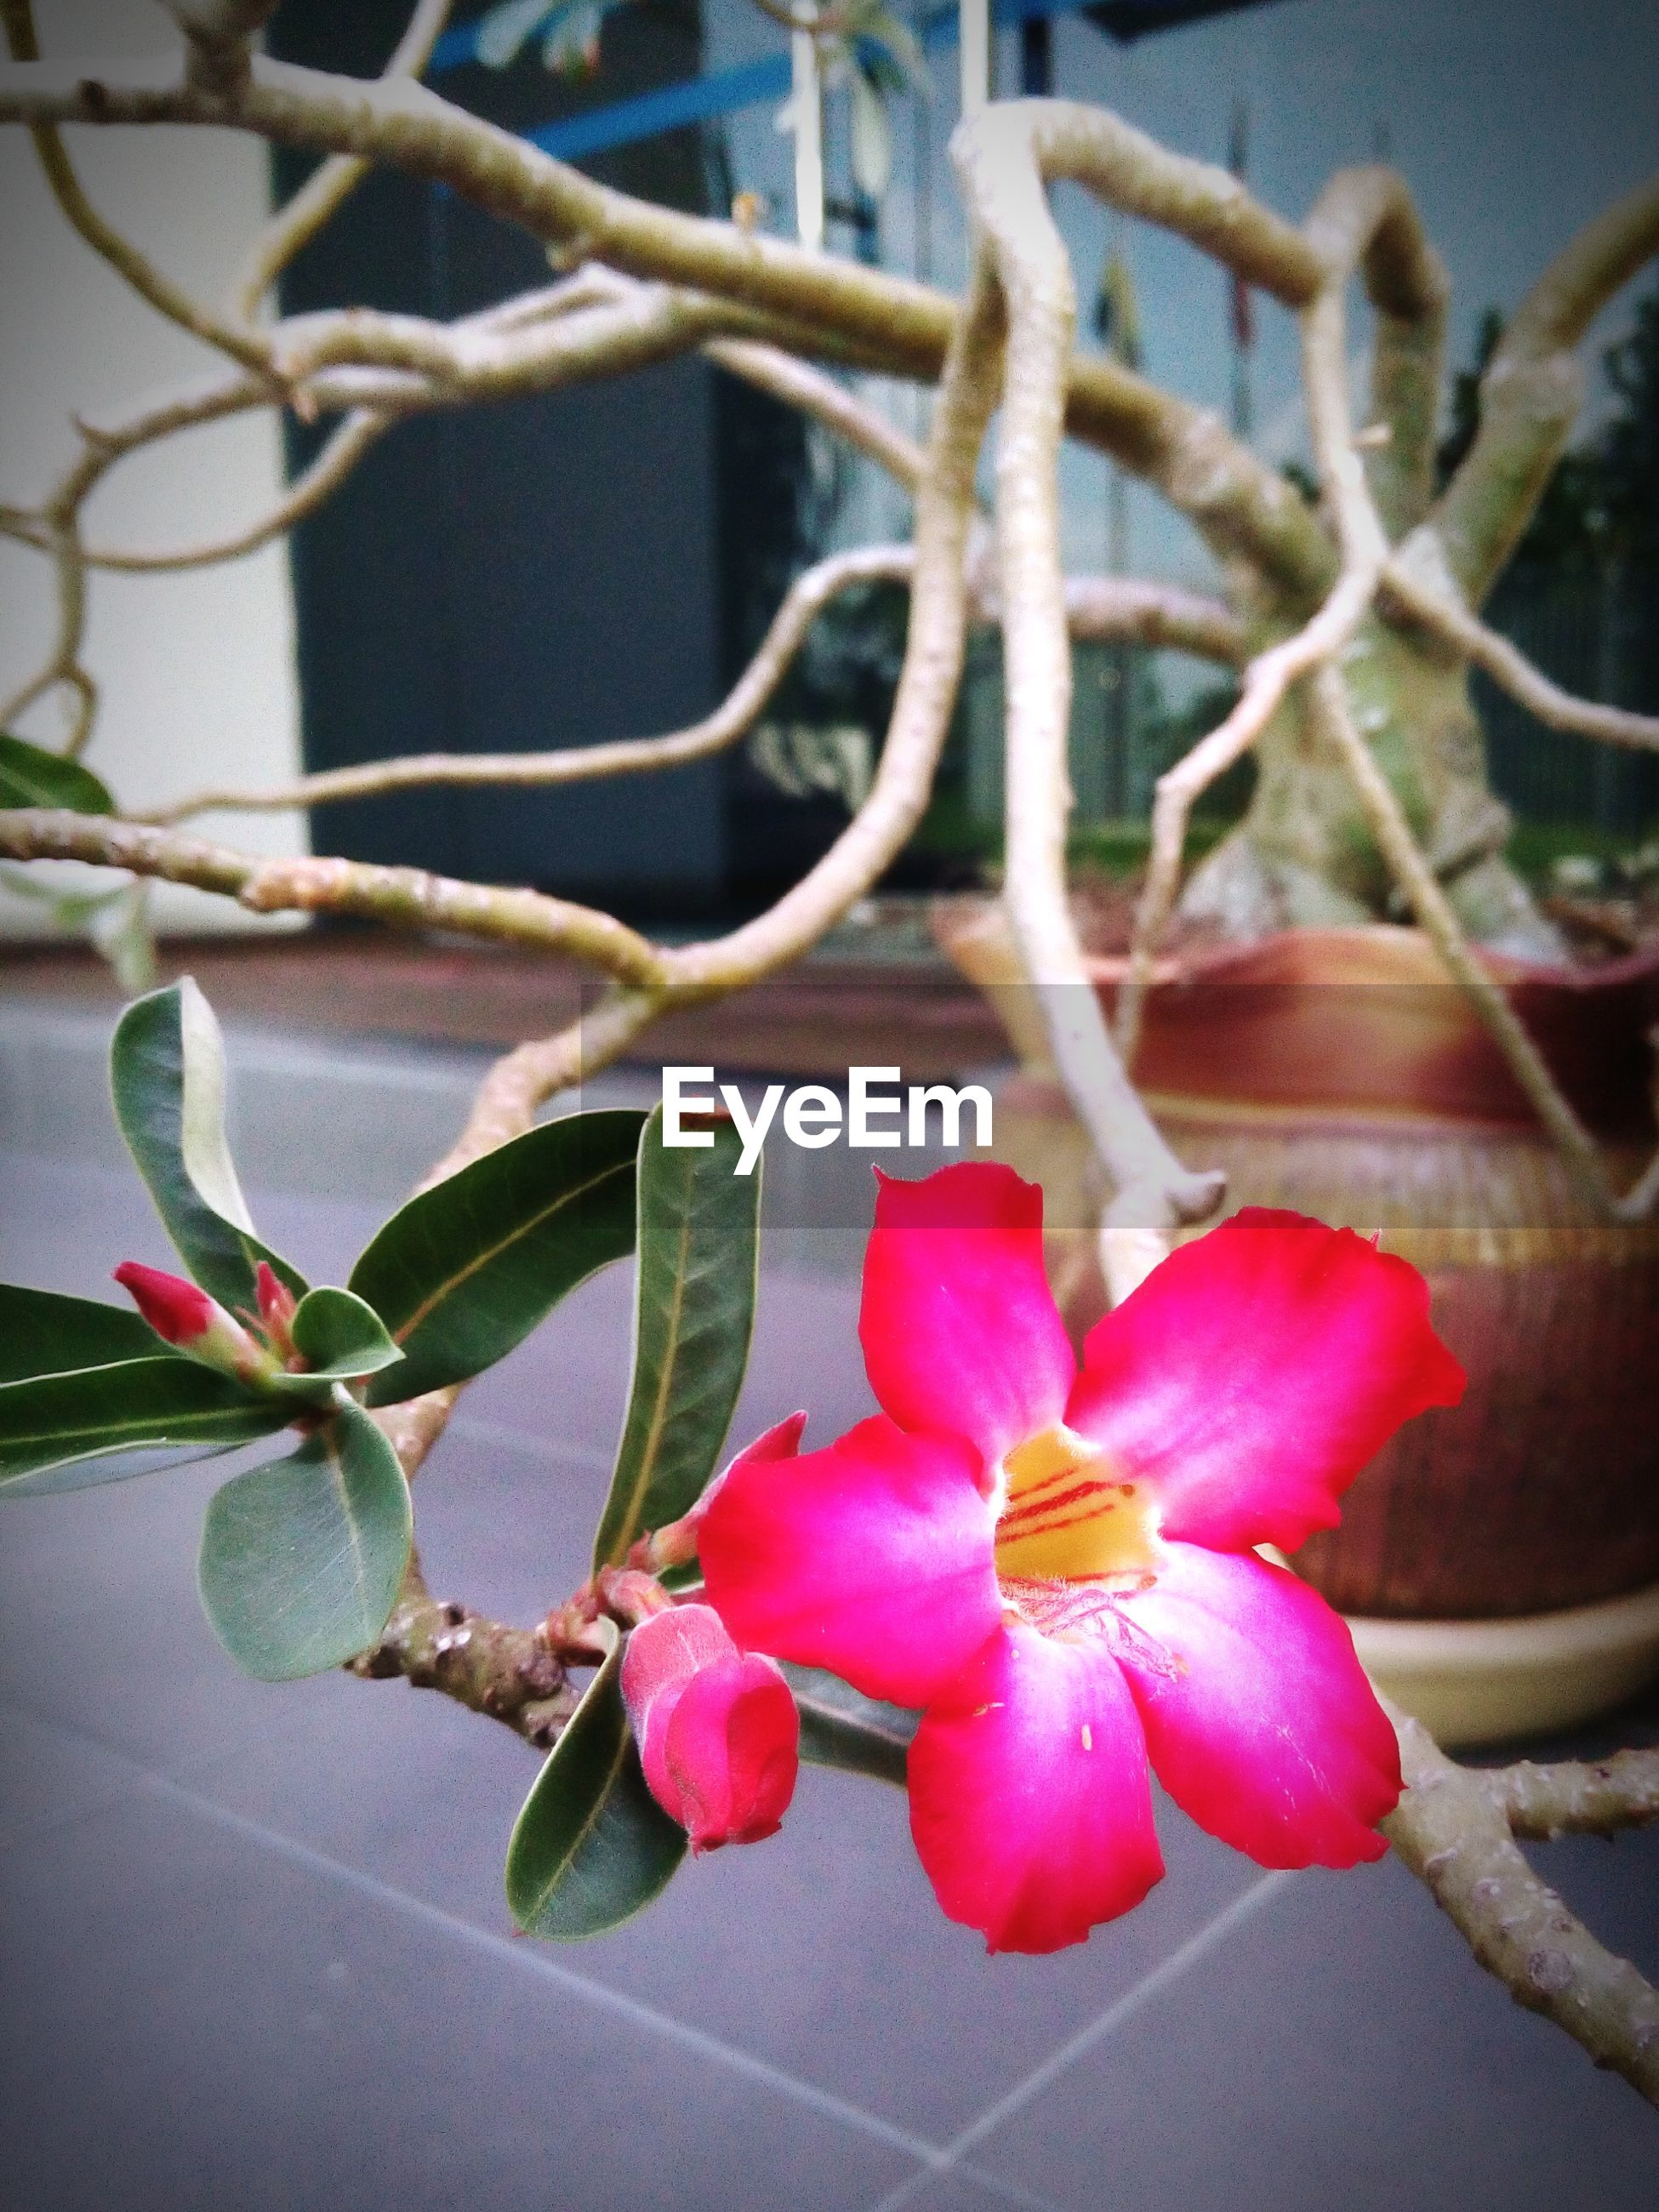 flower, freshness, fragility, growth, plant, petal, red, close-up, focus on foreground, leaf, nature, beauty in nature, pink color, stem, flower head, day, bud, no people, potted plant, branch